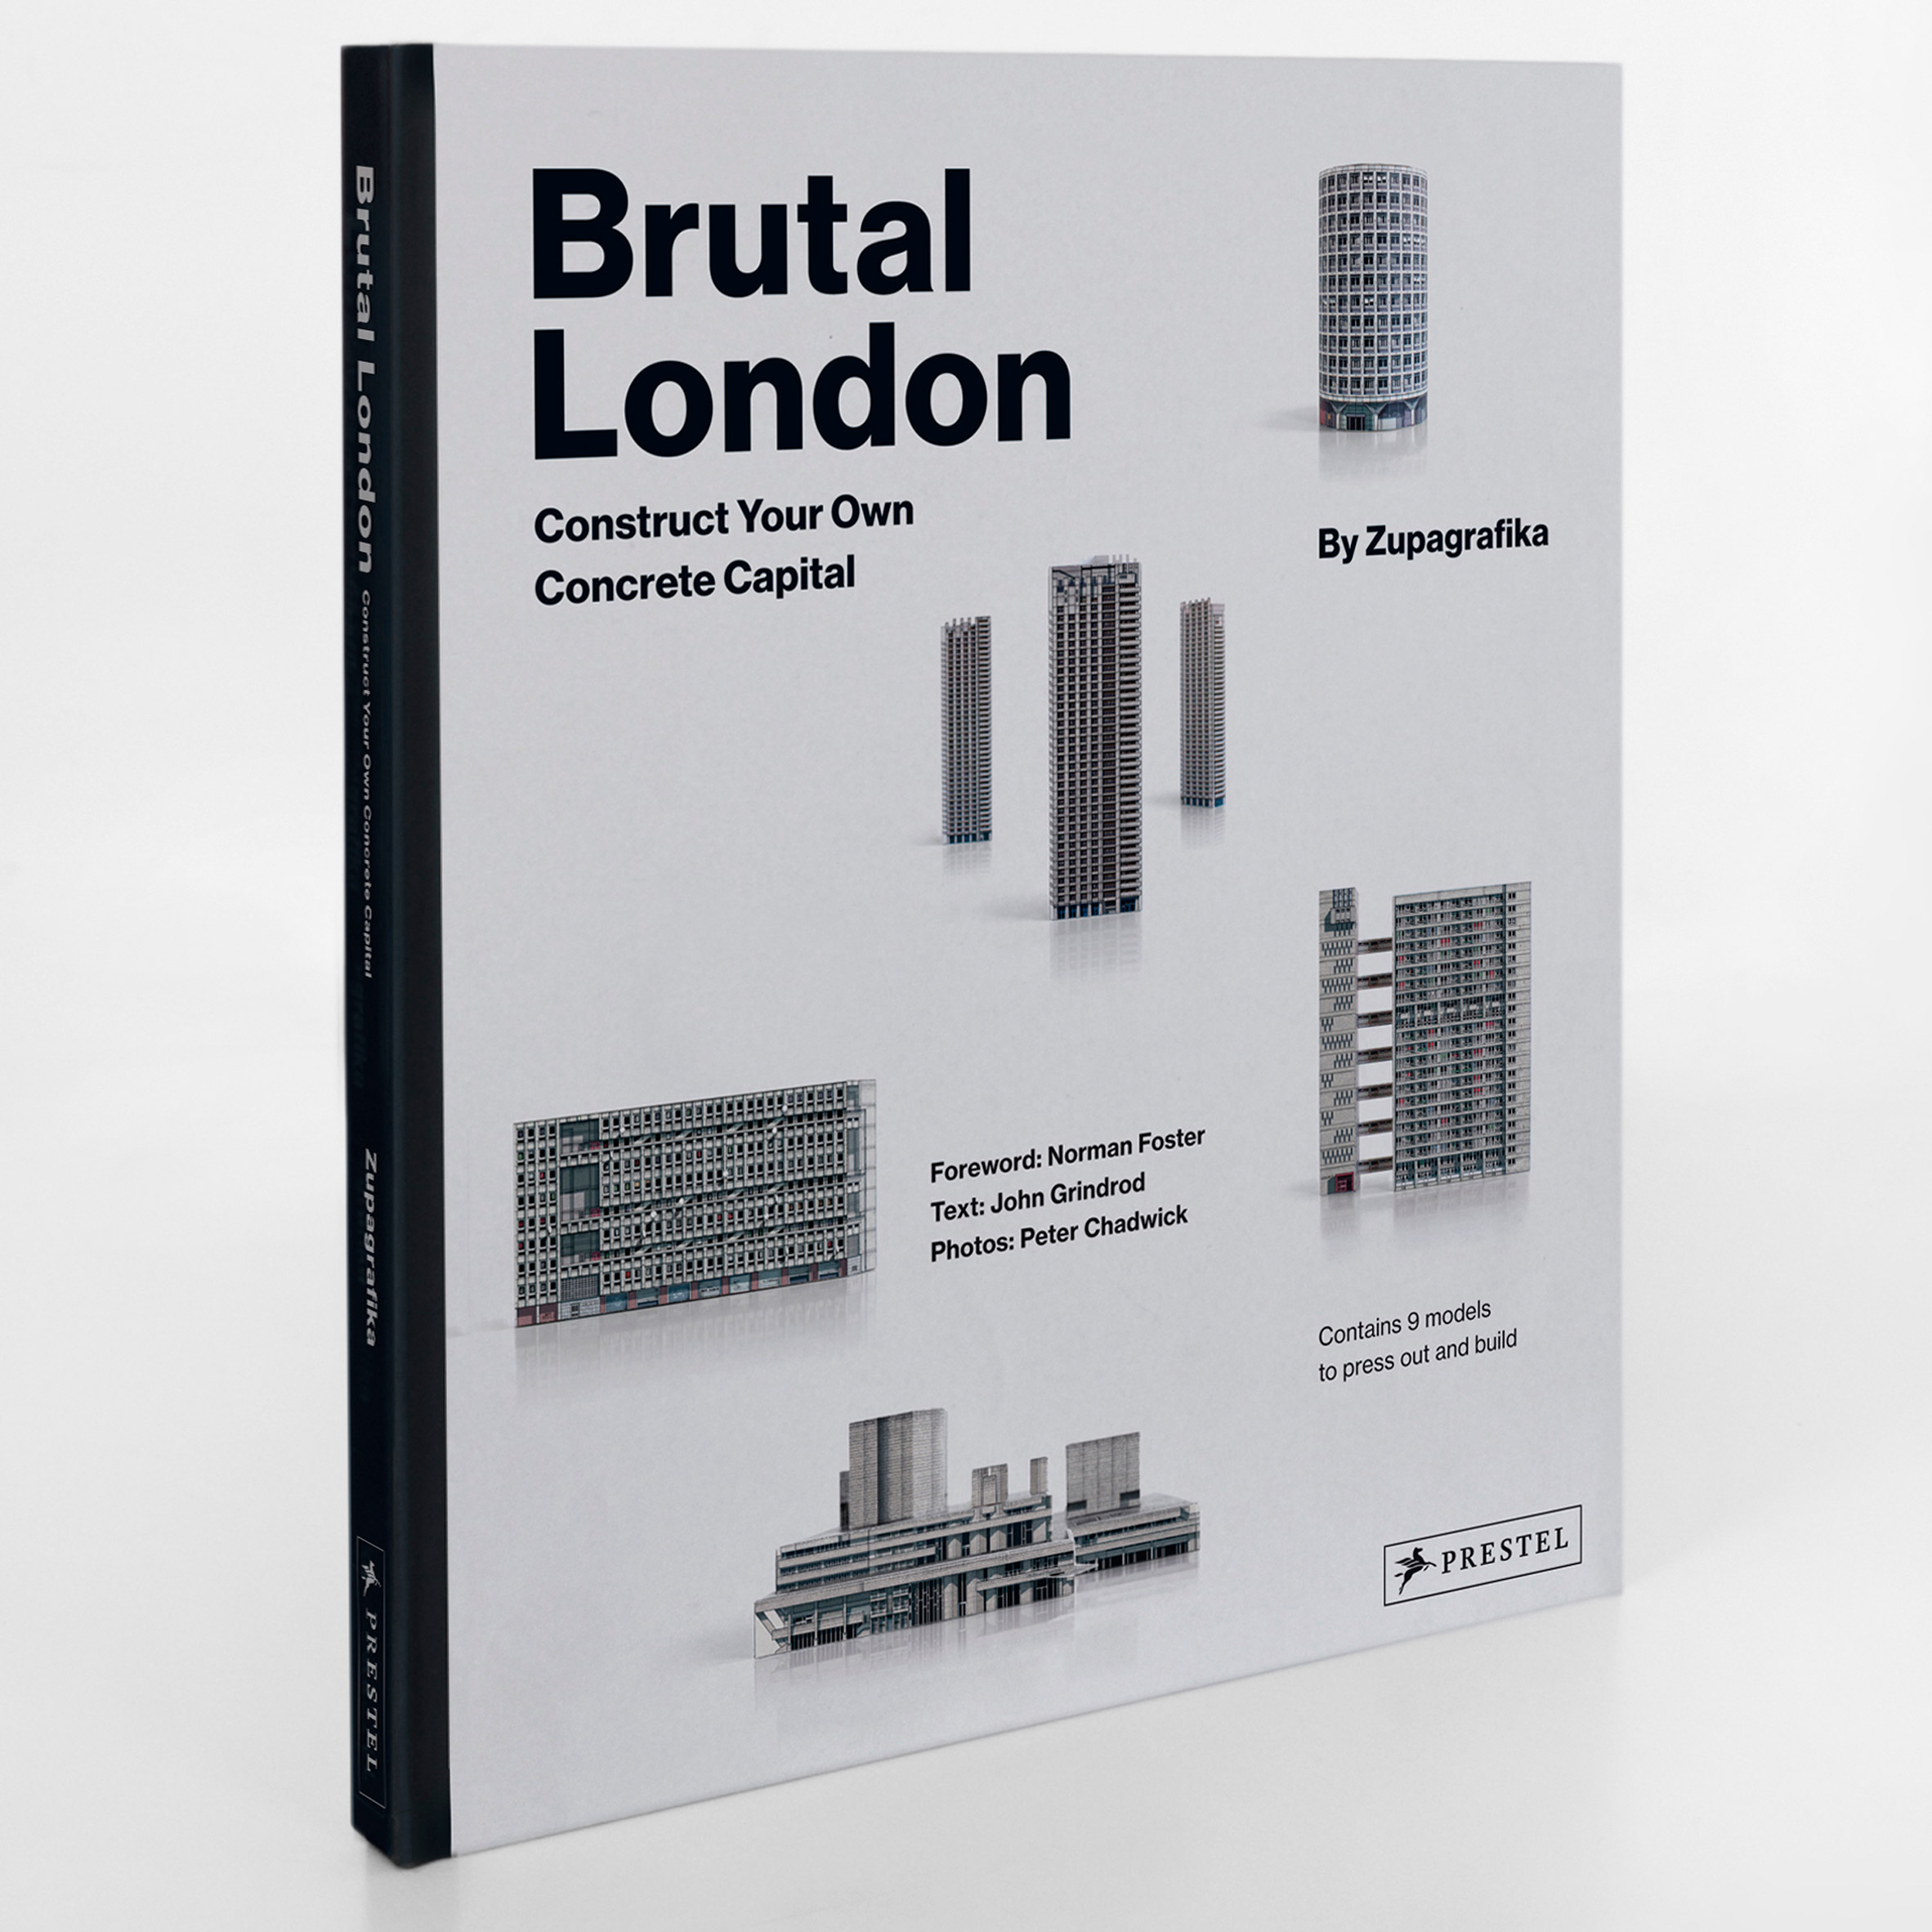 Competition: win a book filled with pull-out models of London's brutalist buildings